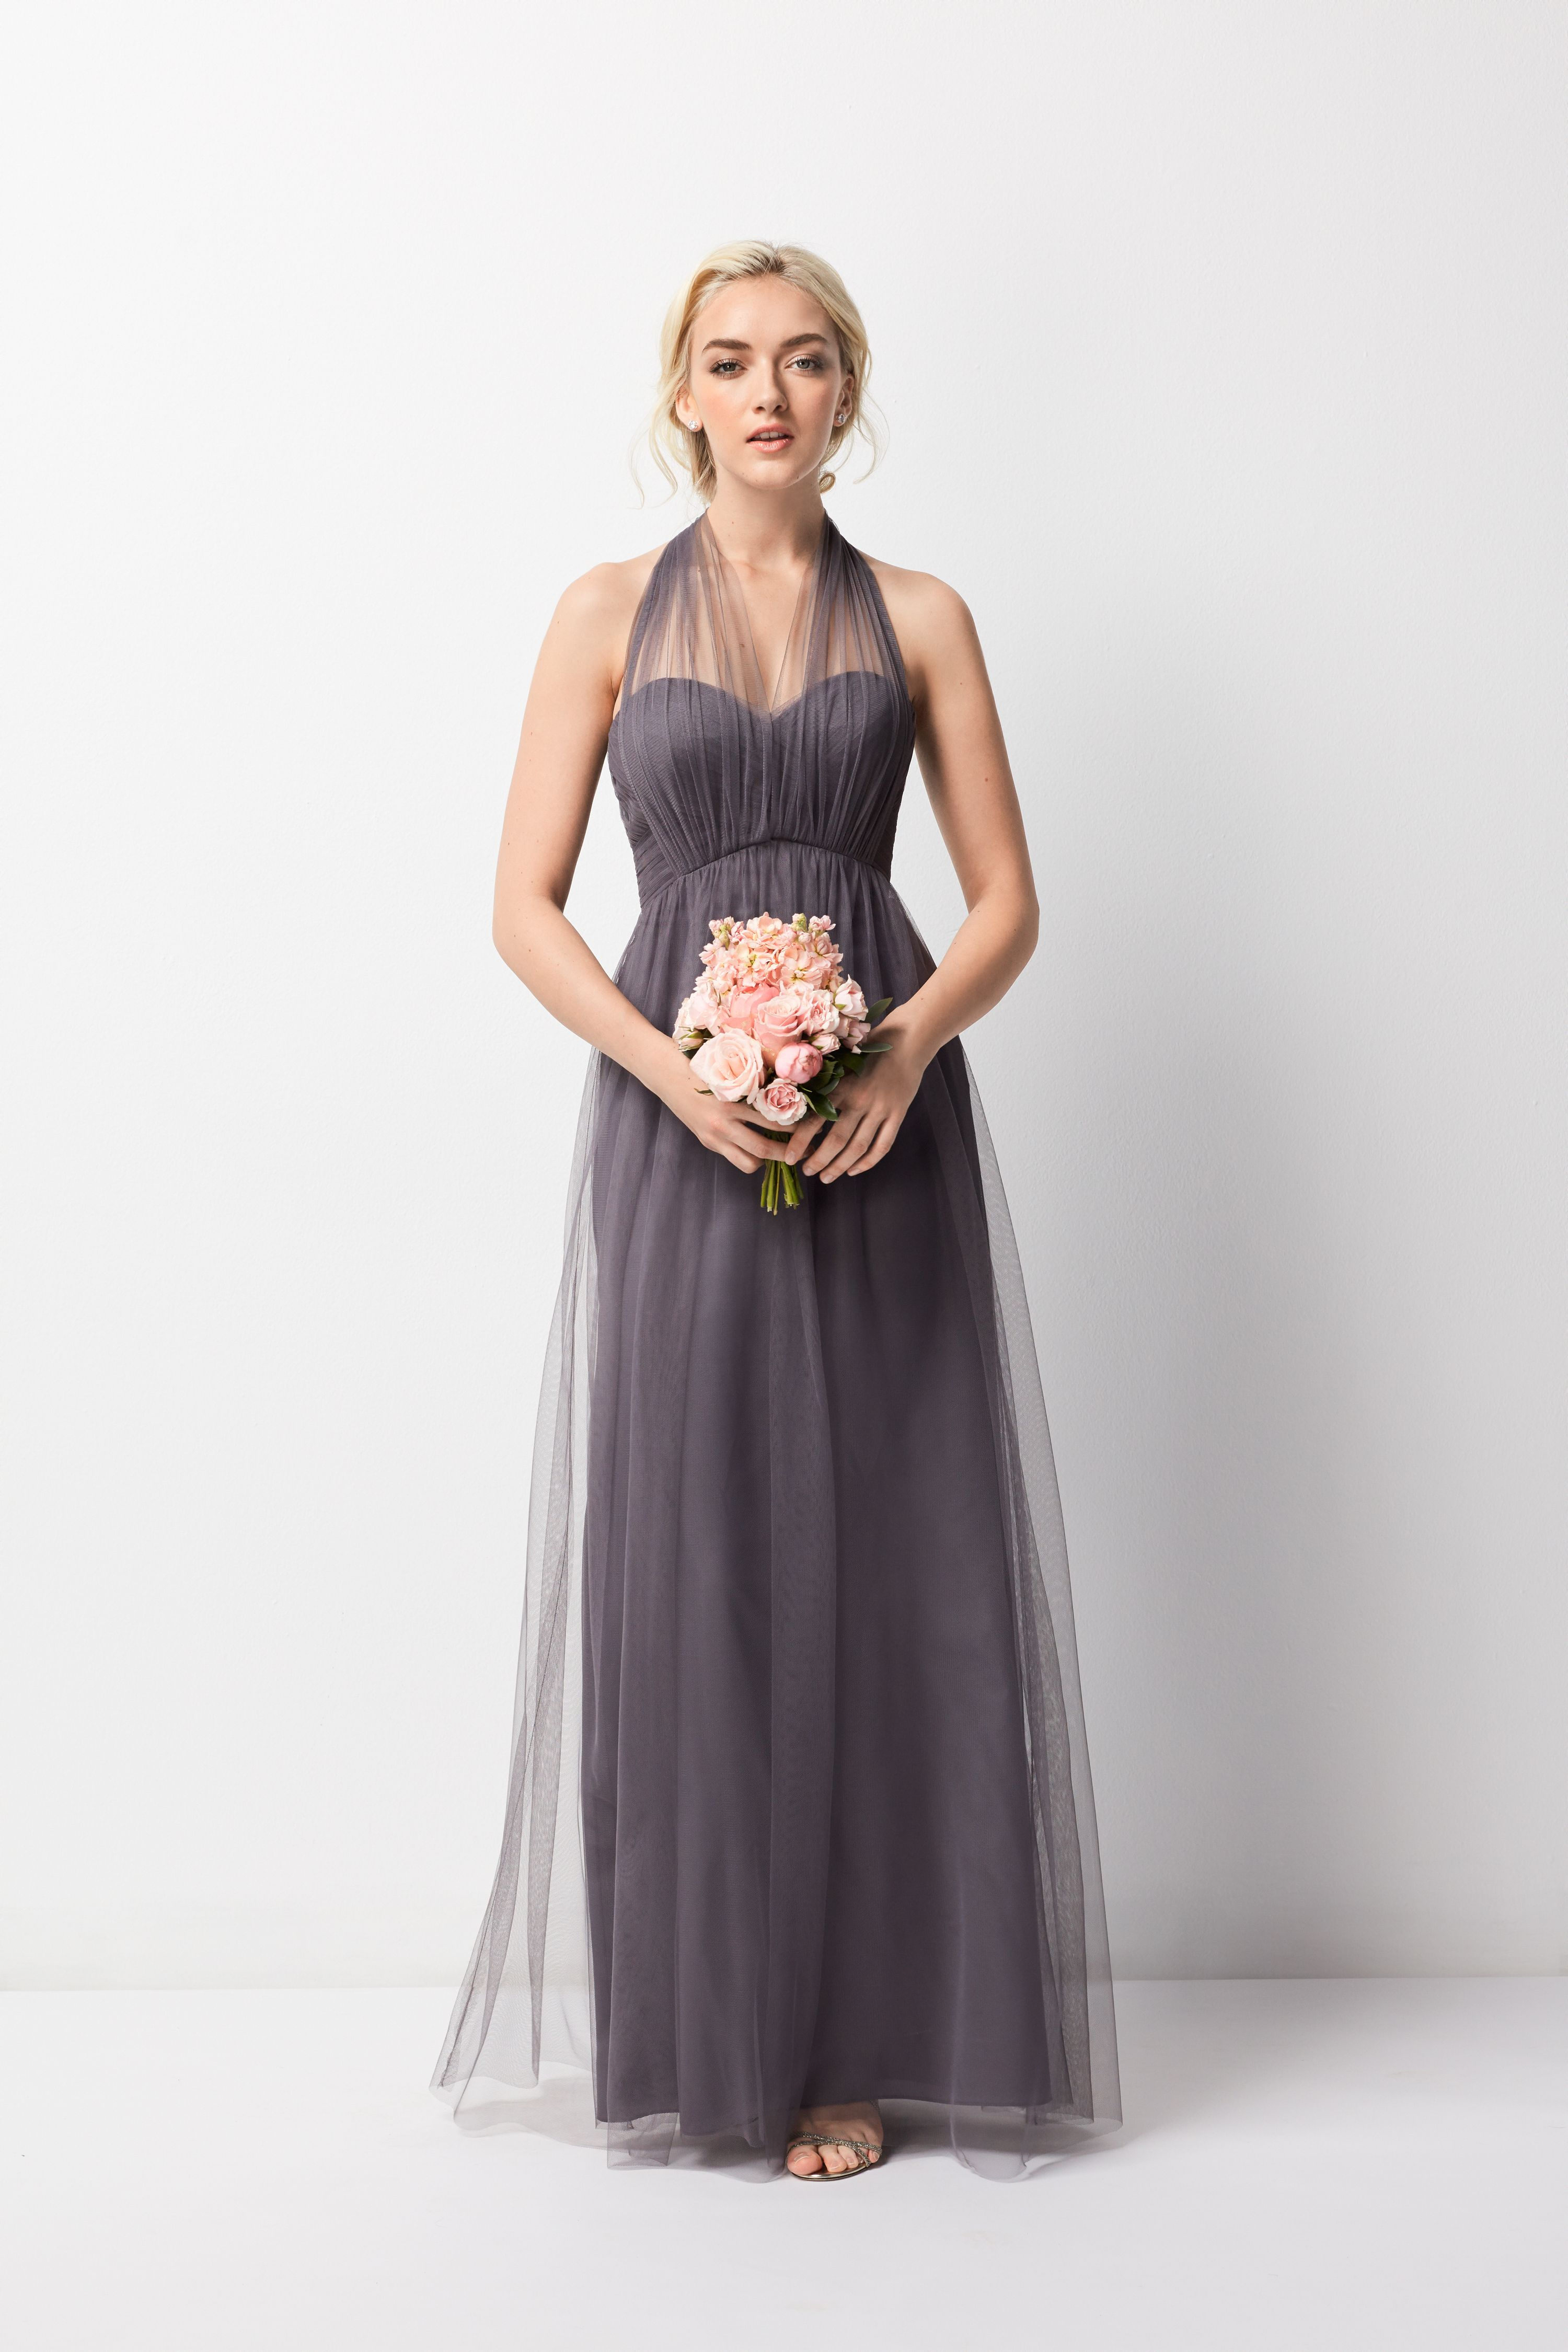 Watterswtoo bridesmaids dress style 245 with infinity straps watterswtoo bridesmaids dress style 245 with infinity straps ombrellifo Choice Image